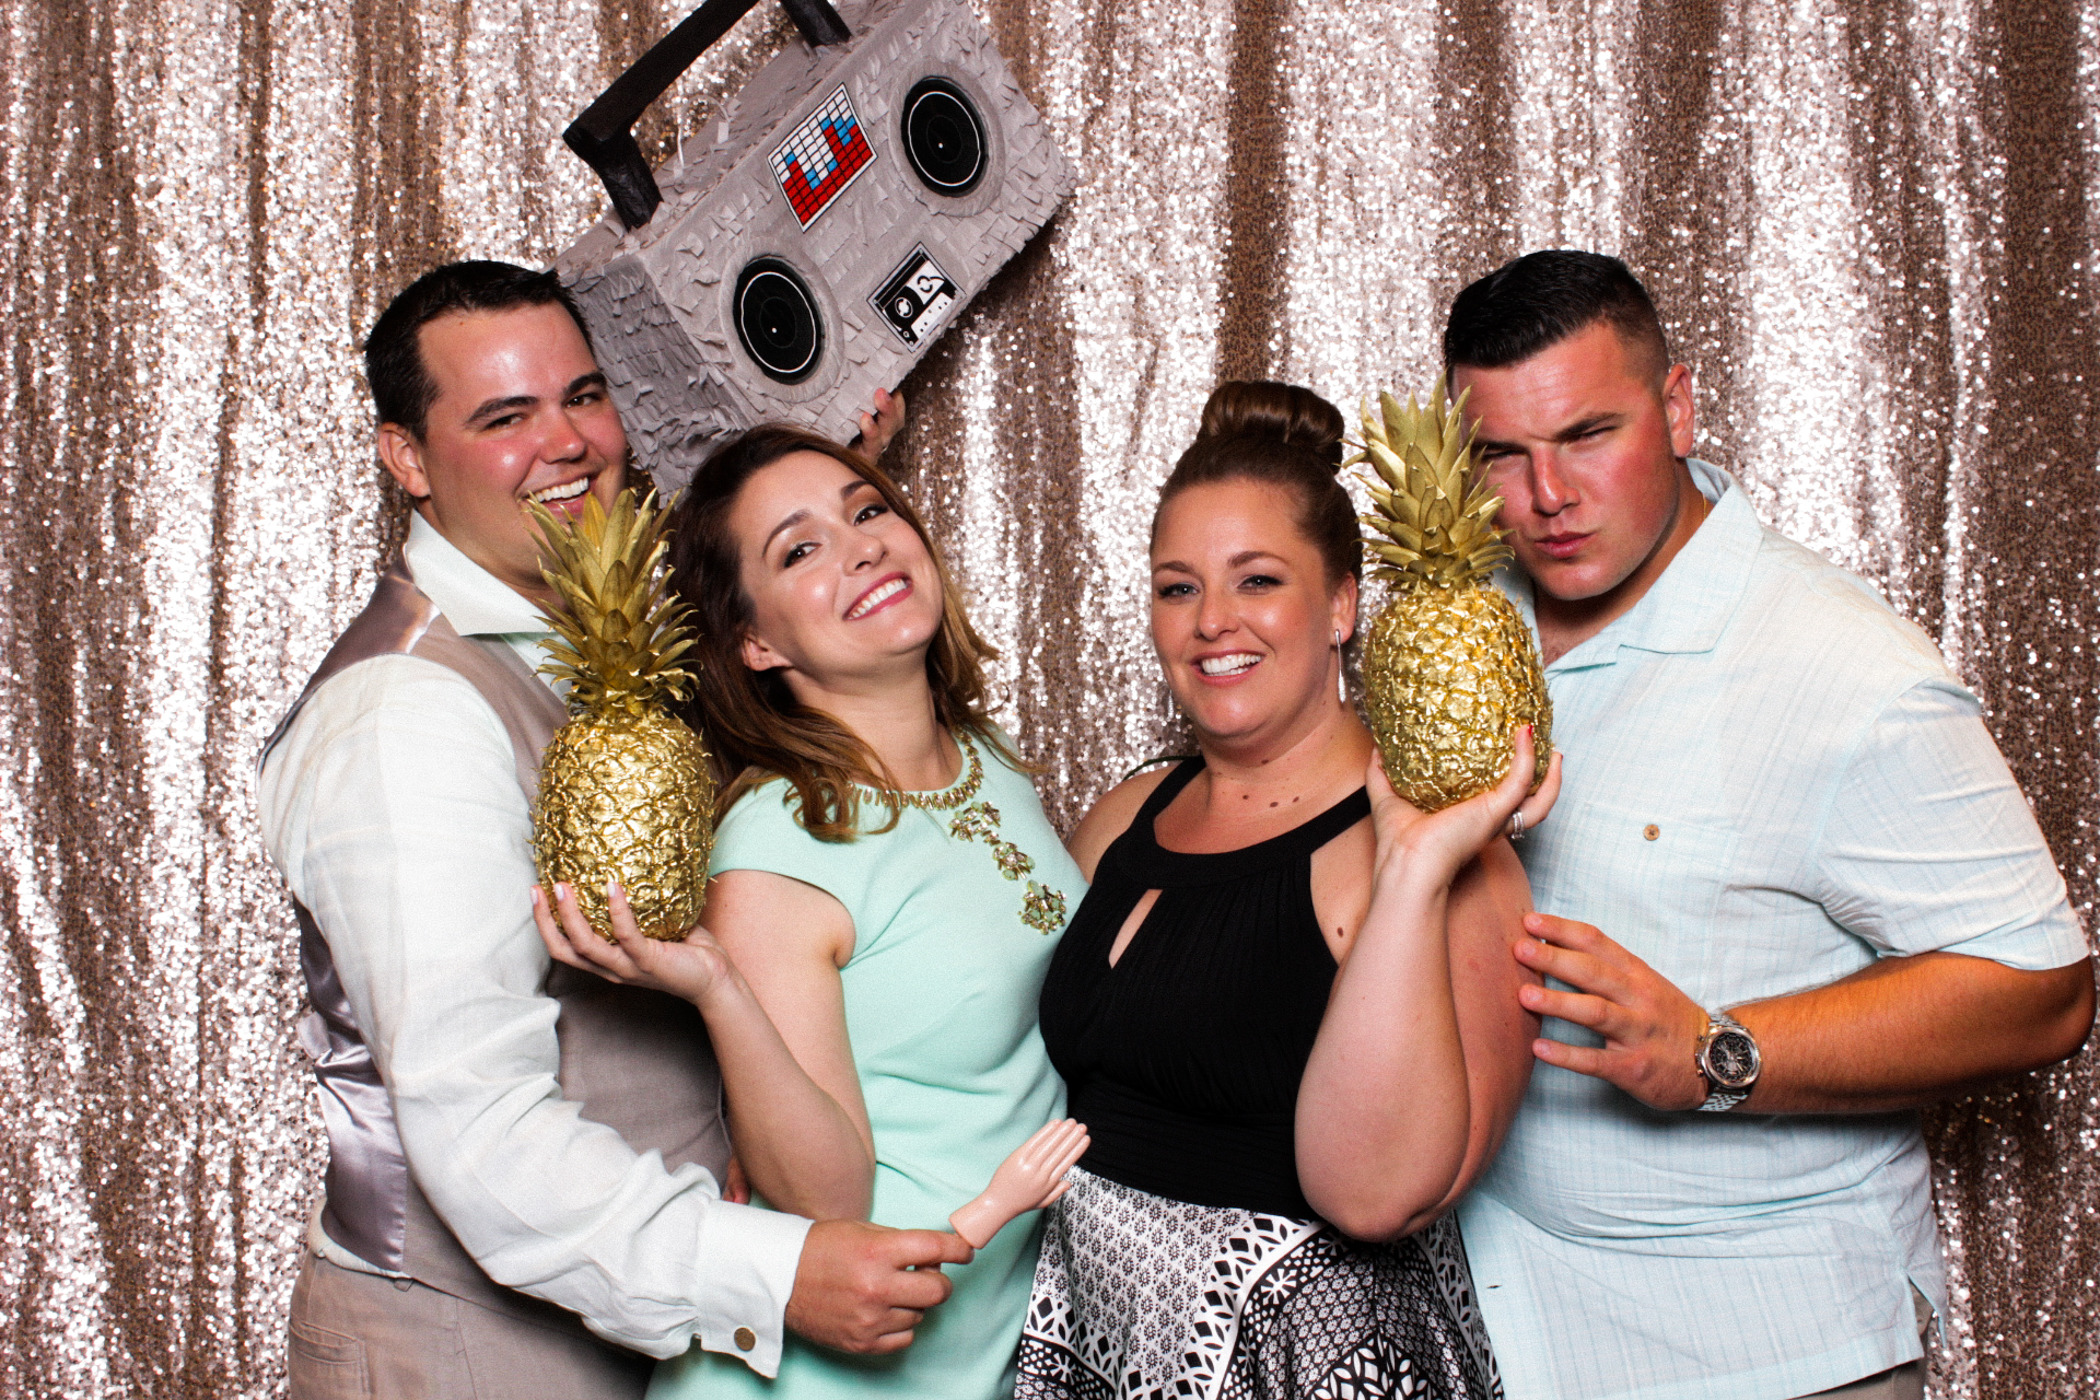 The_Reverie_Booth-Boca_Raton_Photobooth-Wedding_Photobooth_Florida-Florida_Photobooth_Rental-Wedding_Photobooth-036.jpg